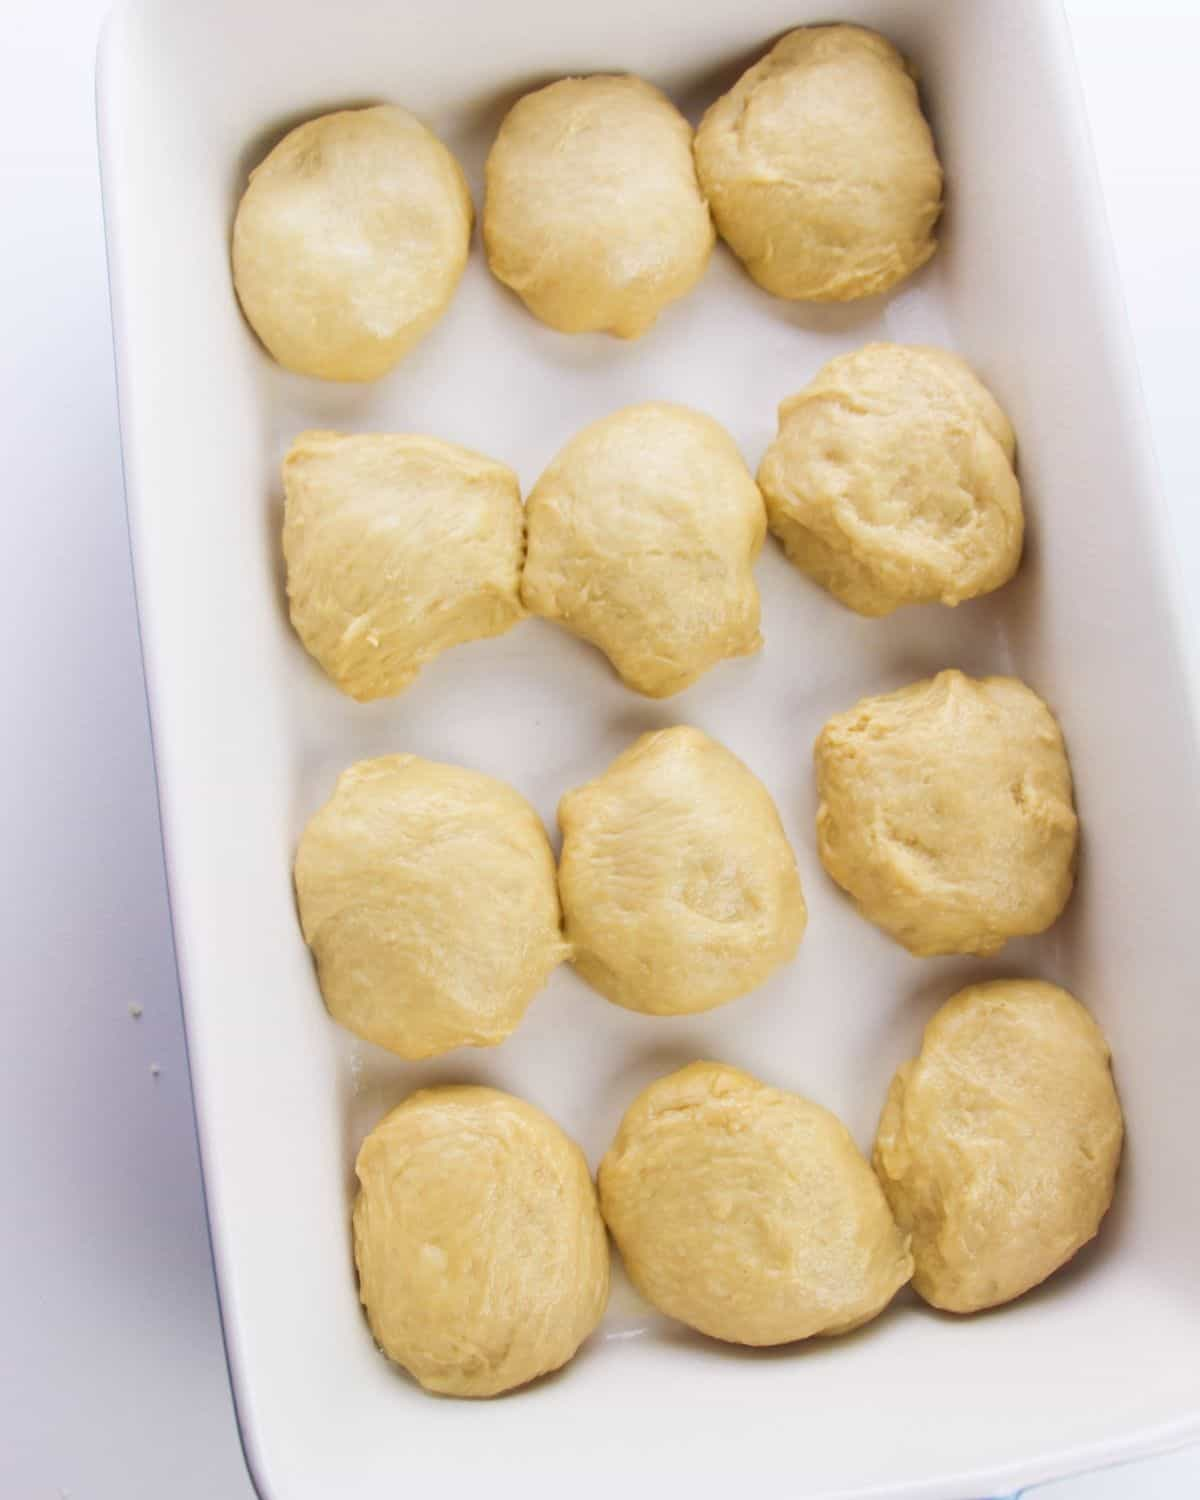 Unbaked rolls in a white baking dish to proof and double in size.